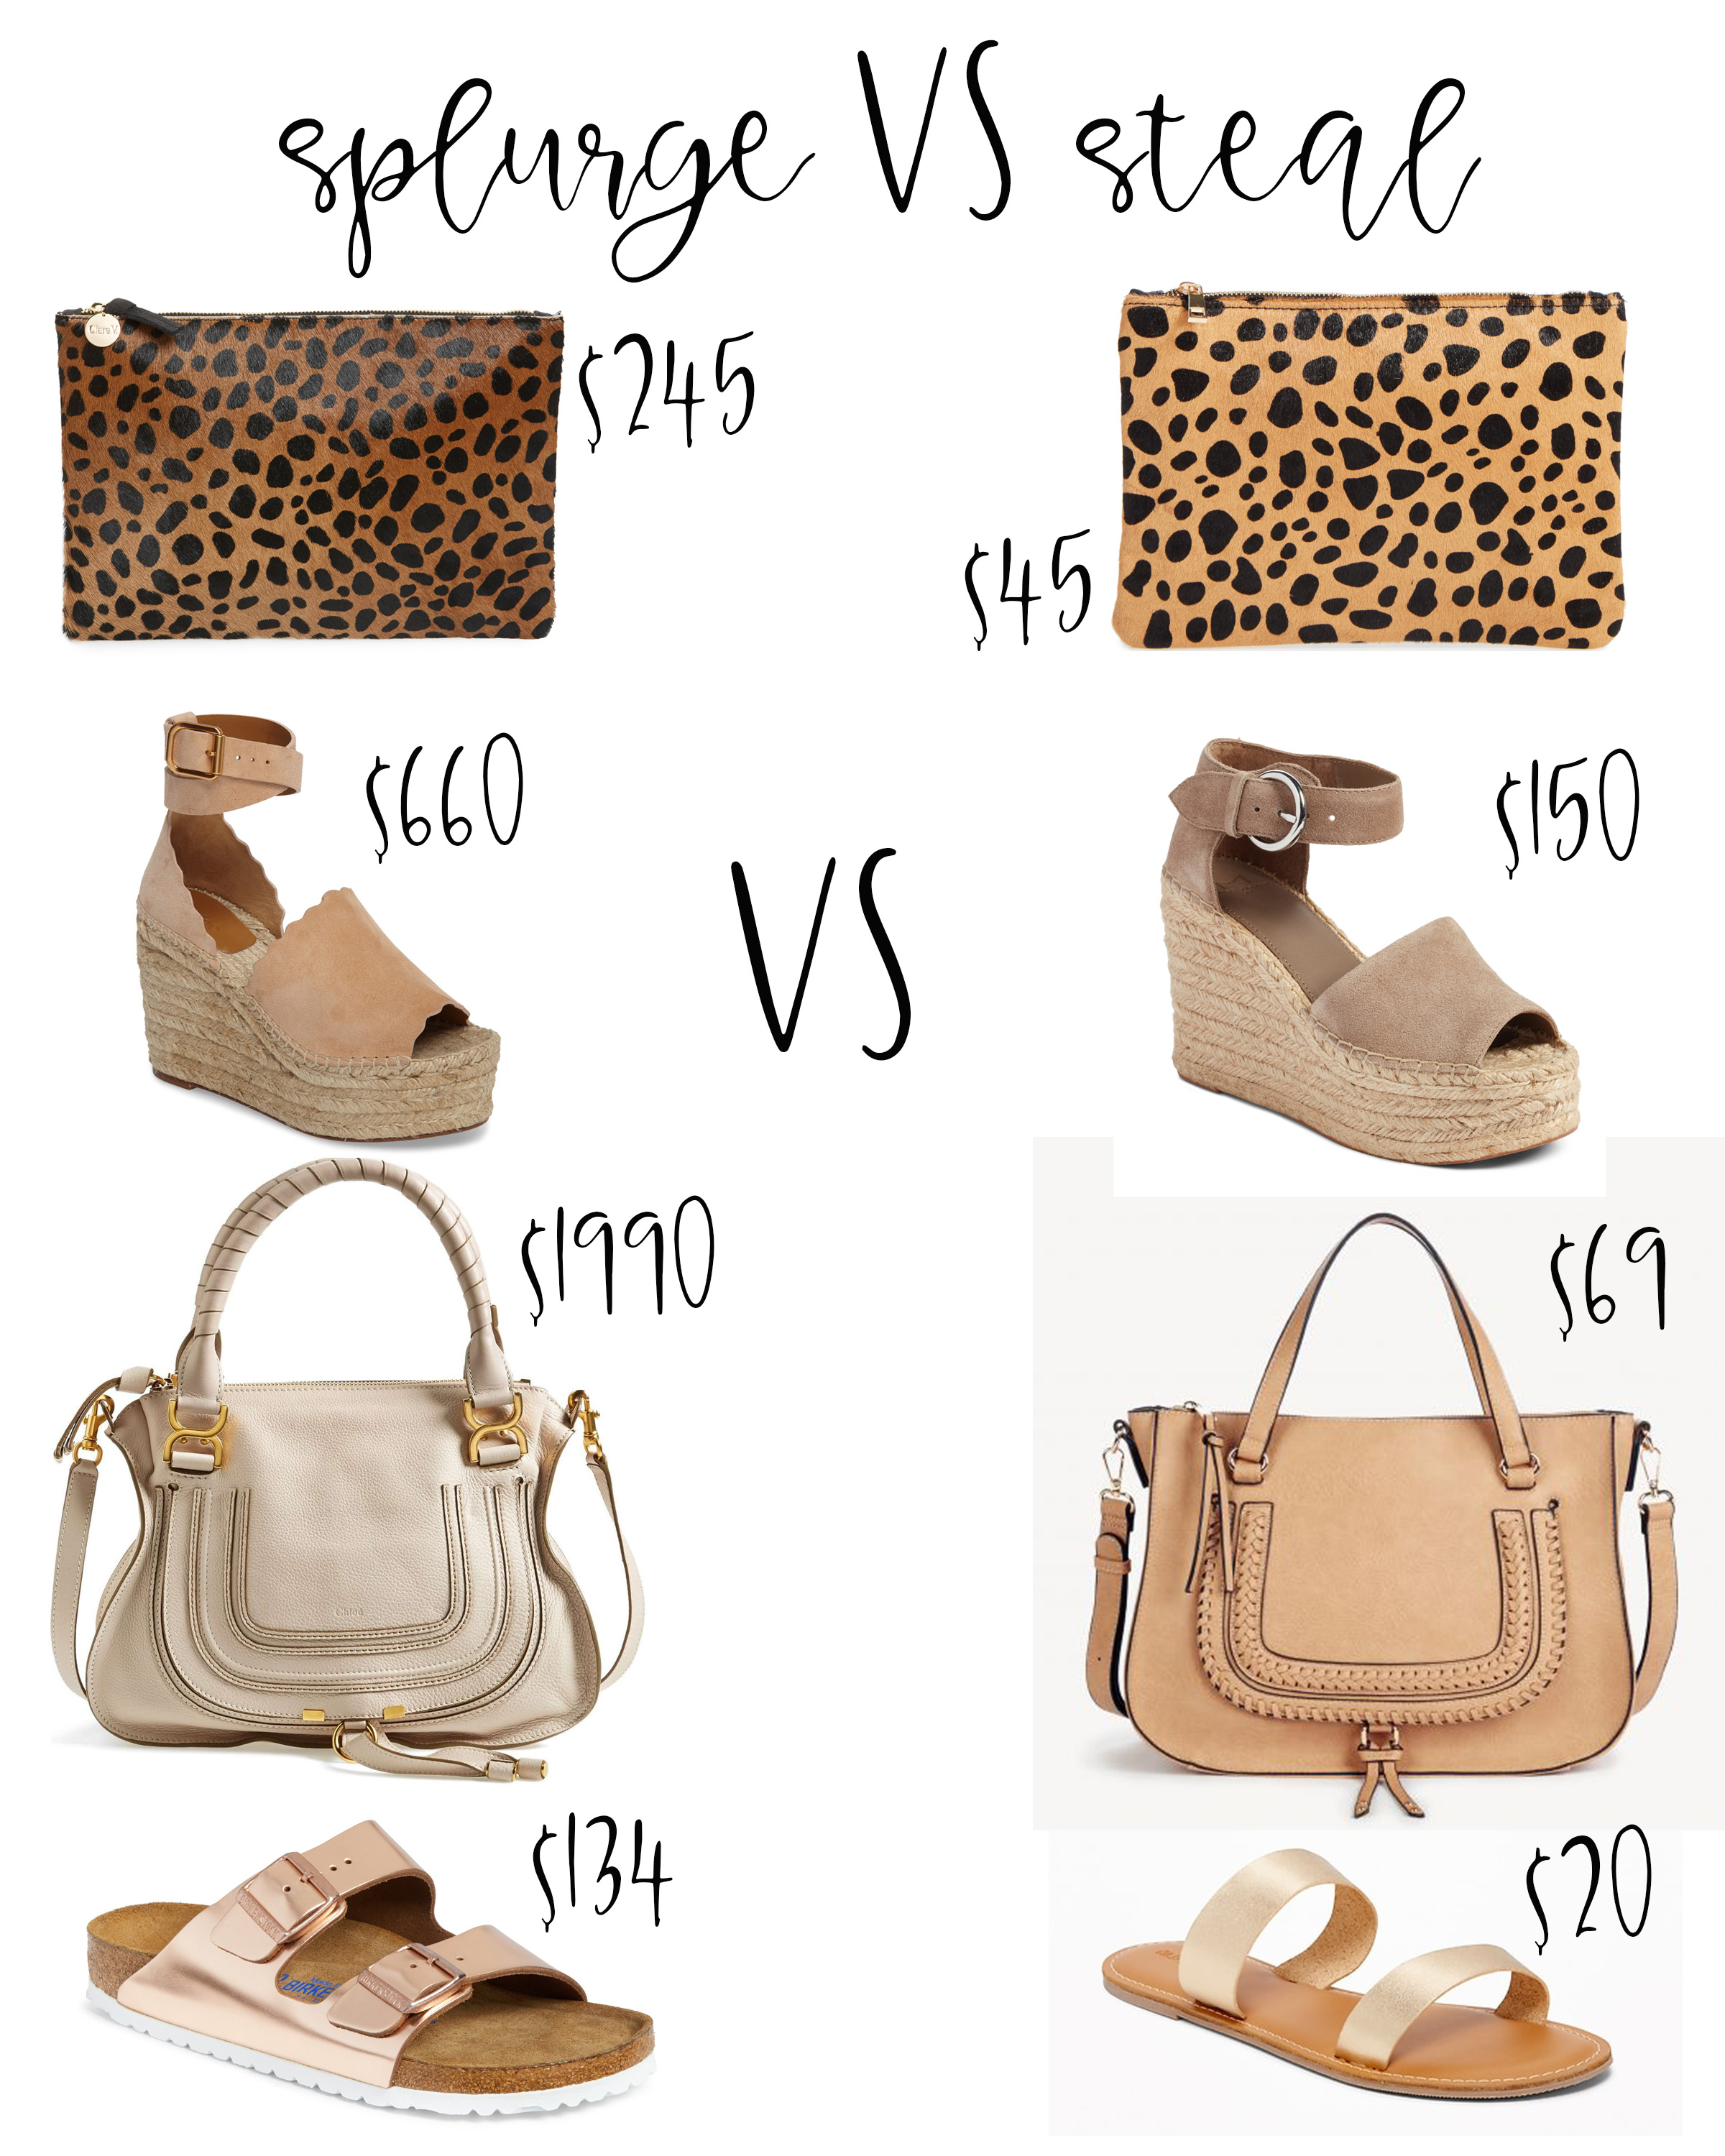 a5a9e589af4 Splurge Vs Steal - Fancy Ashley